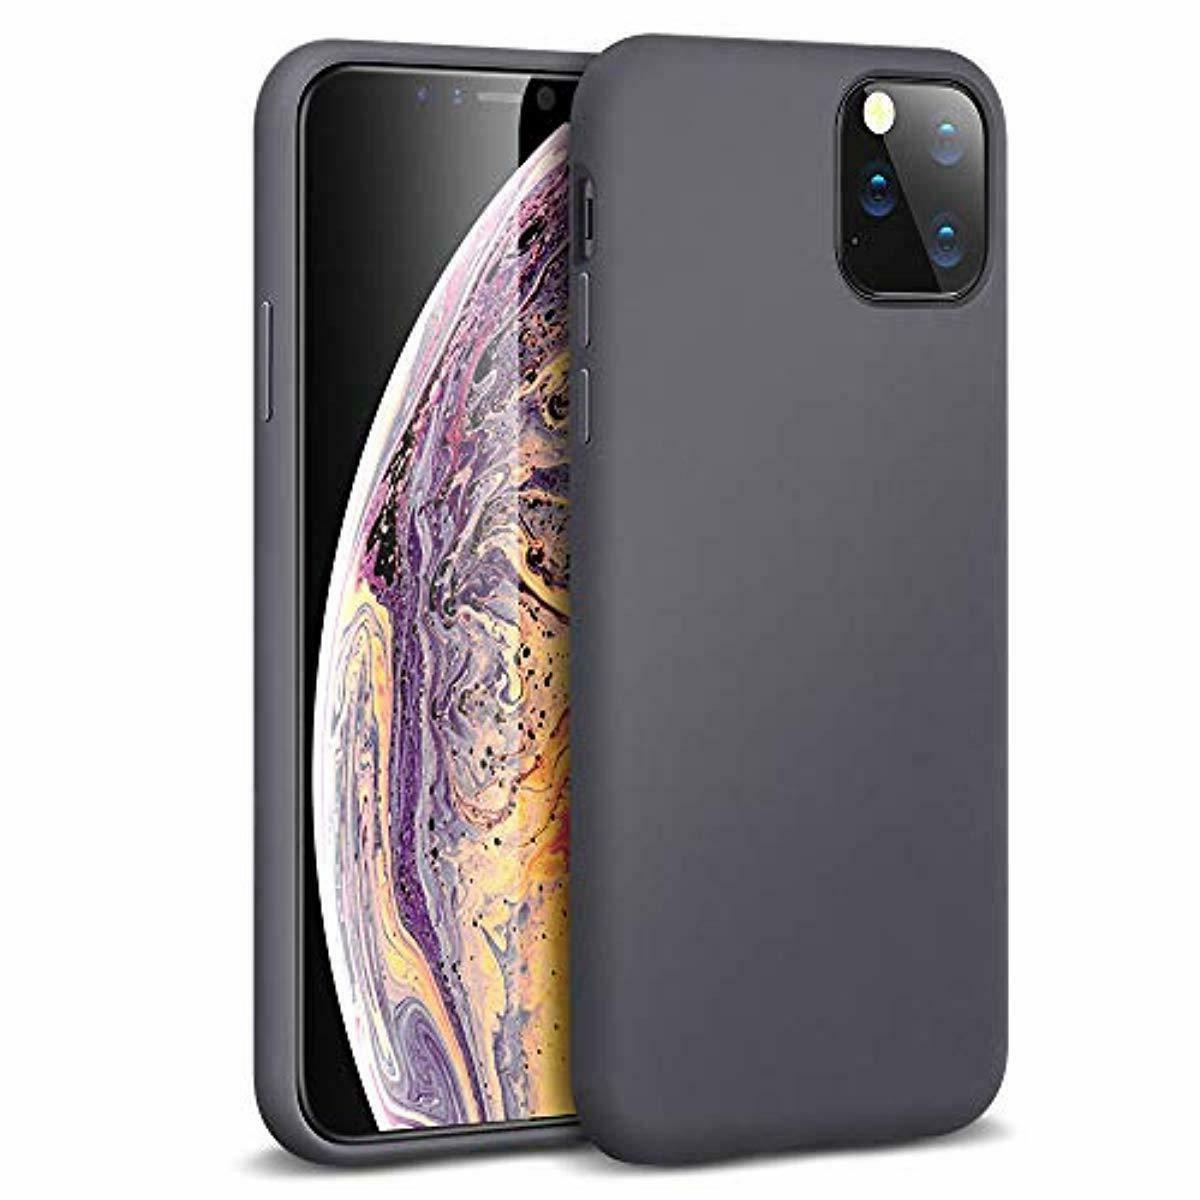 yippee color soft case for iphone 11